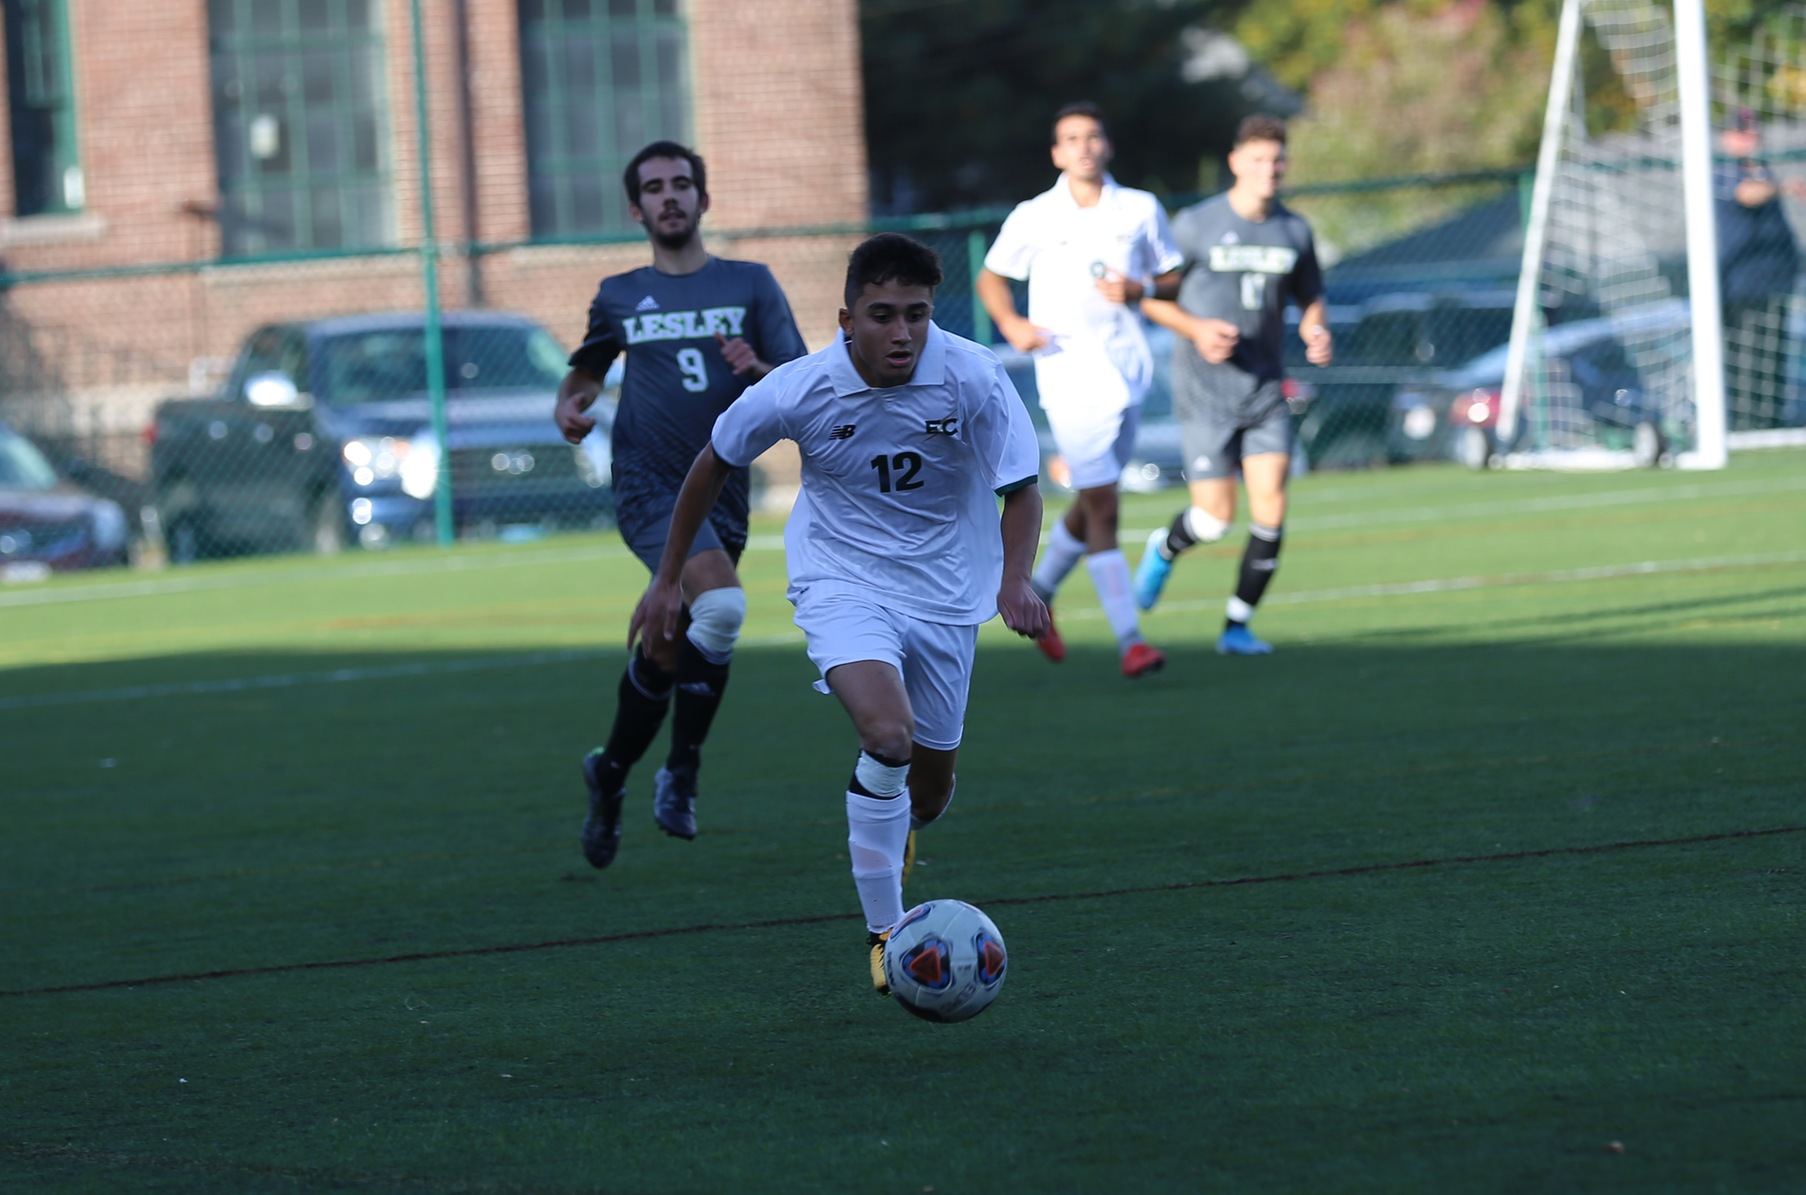 Men's Soccer Ends Regular Season With Win Over Westfield State